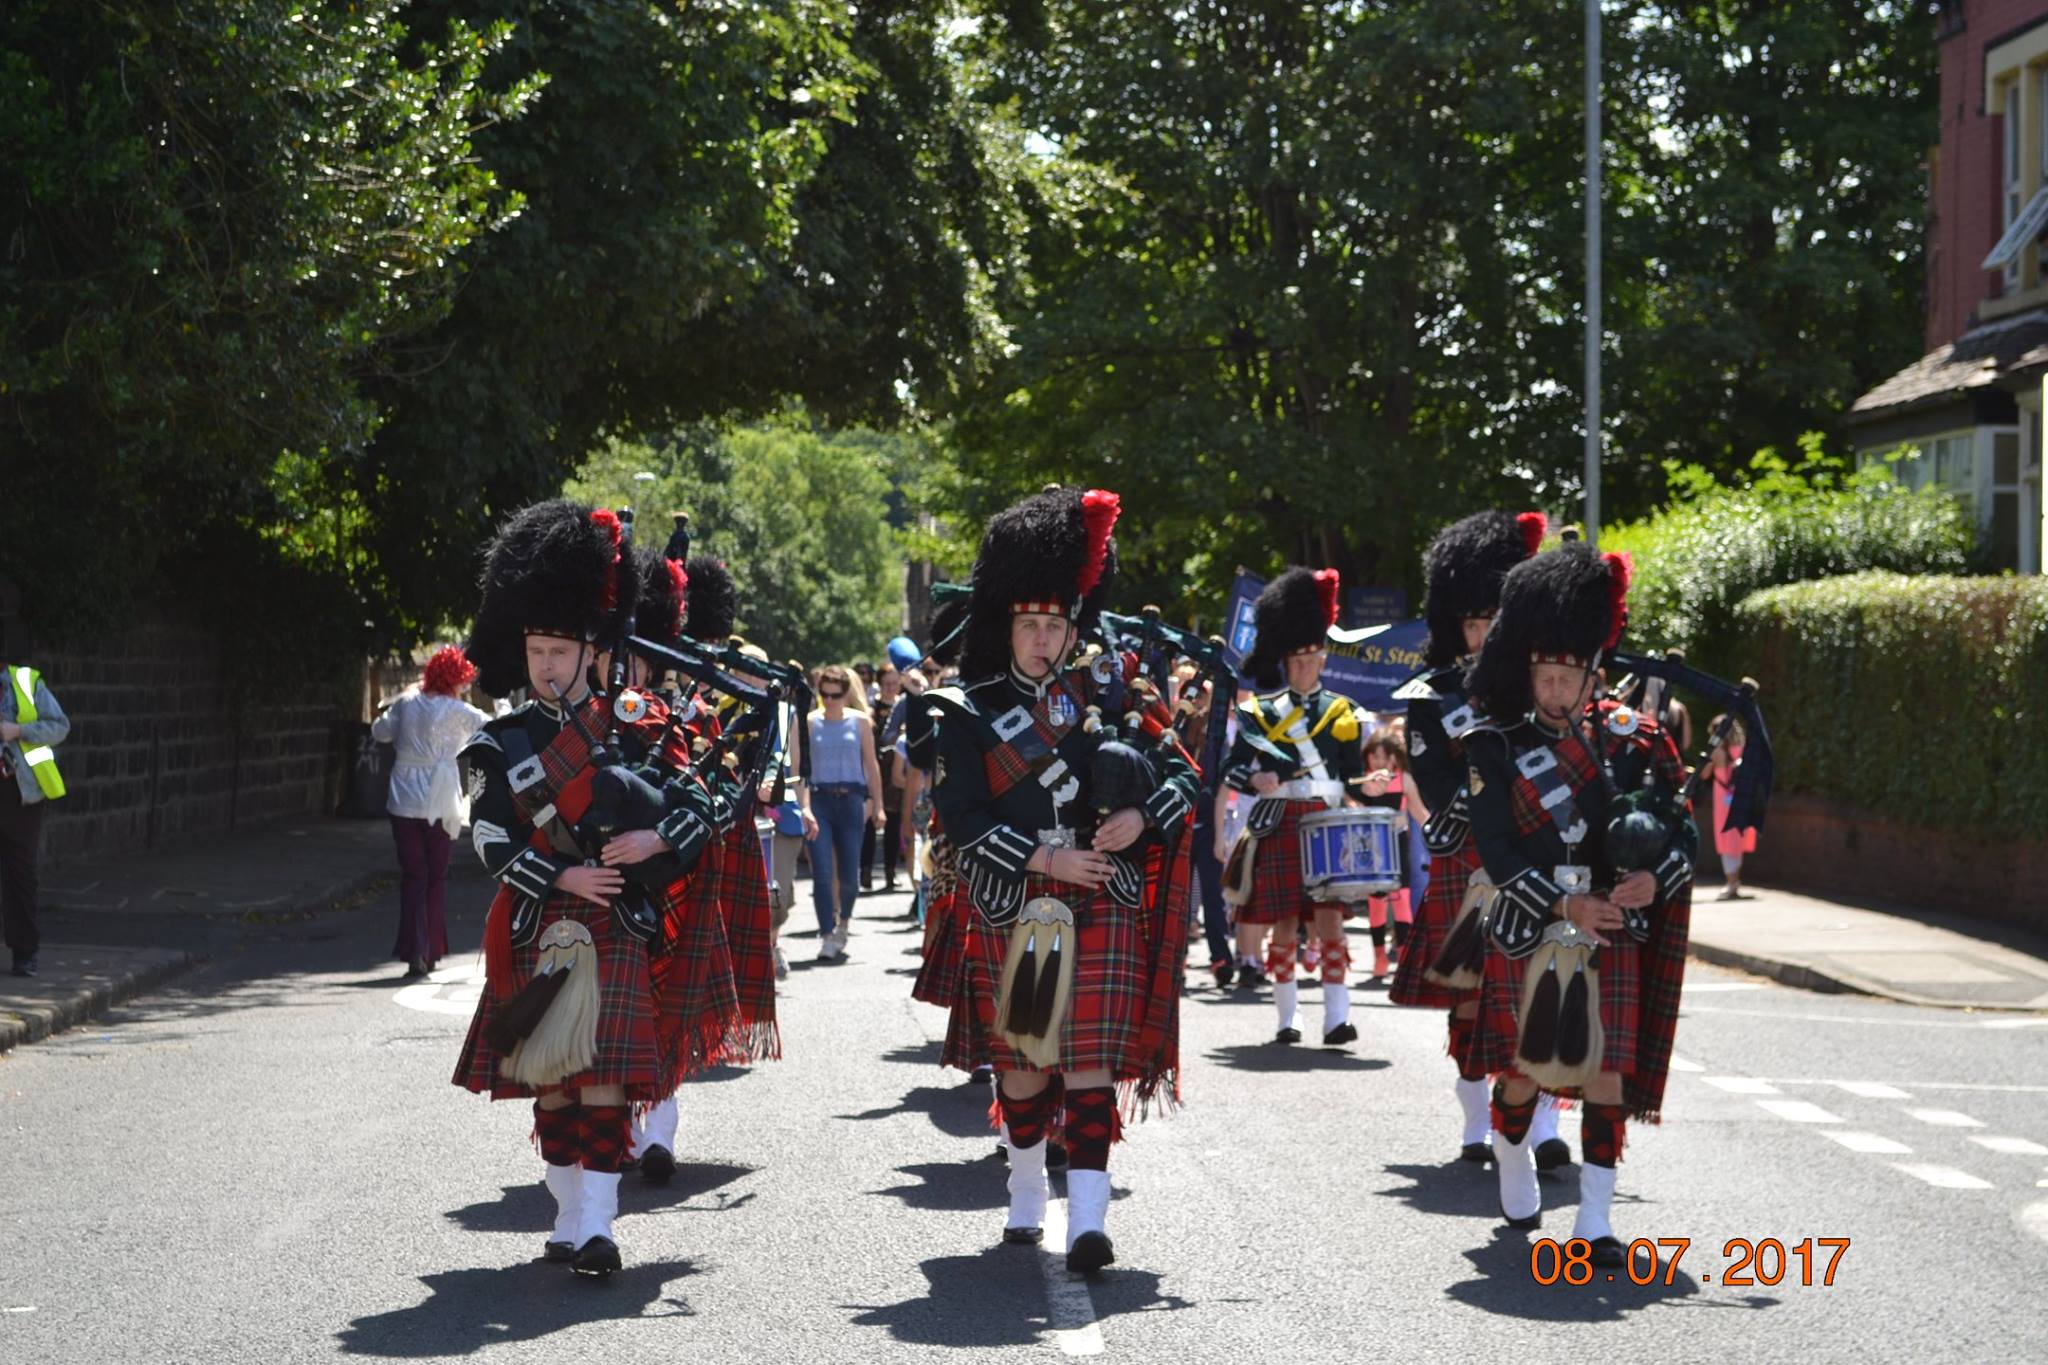 Band Tunes · The City of Leeds Pipeband